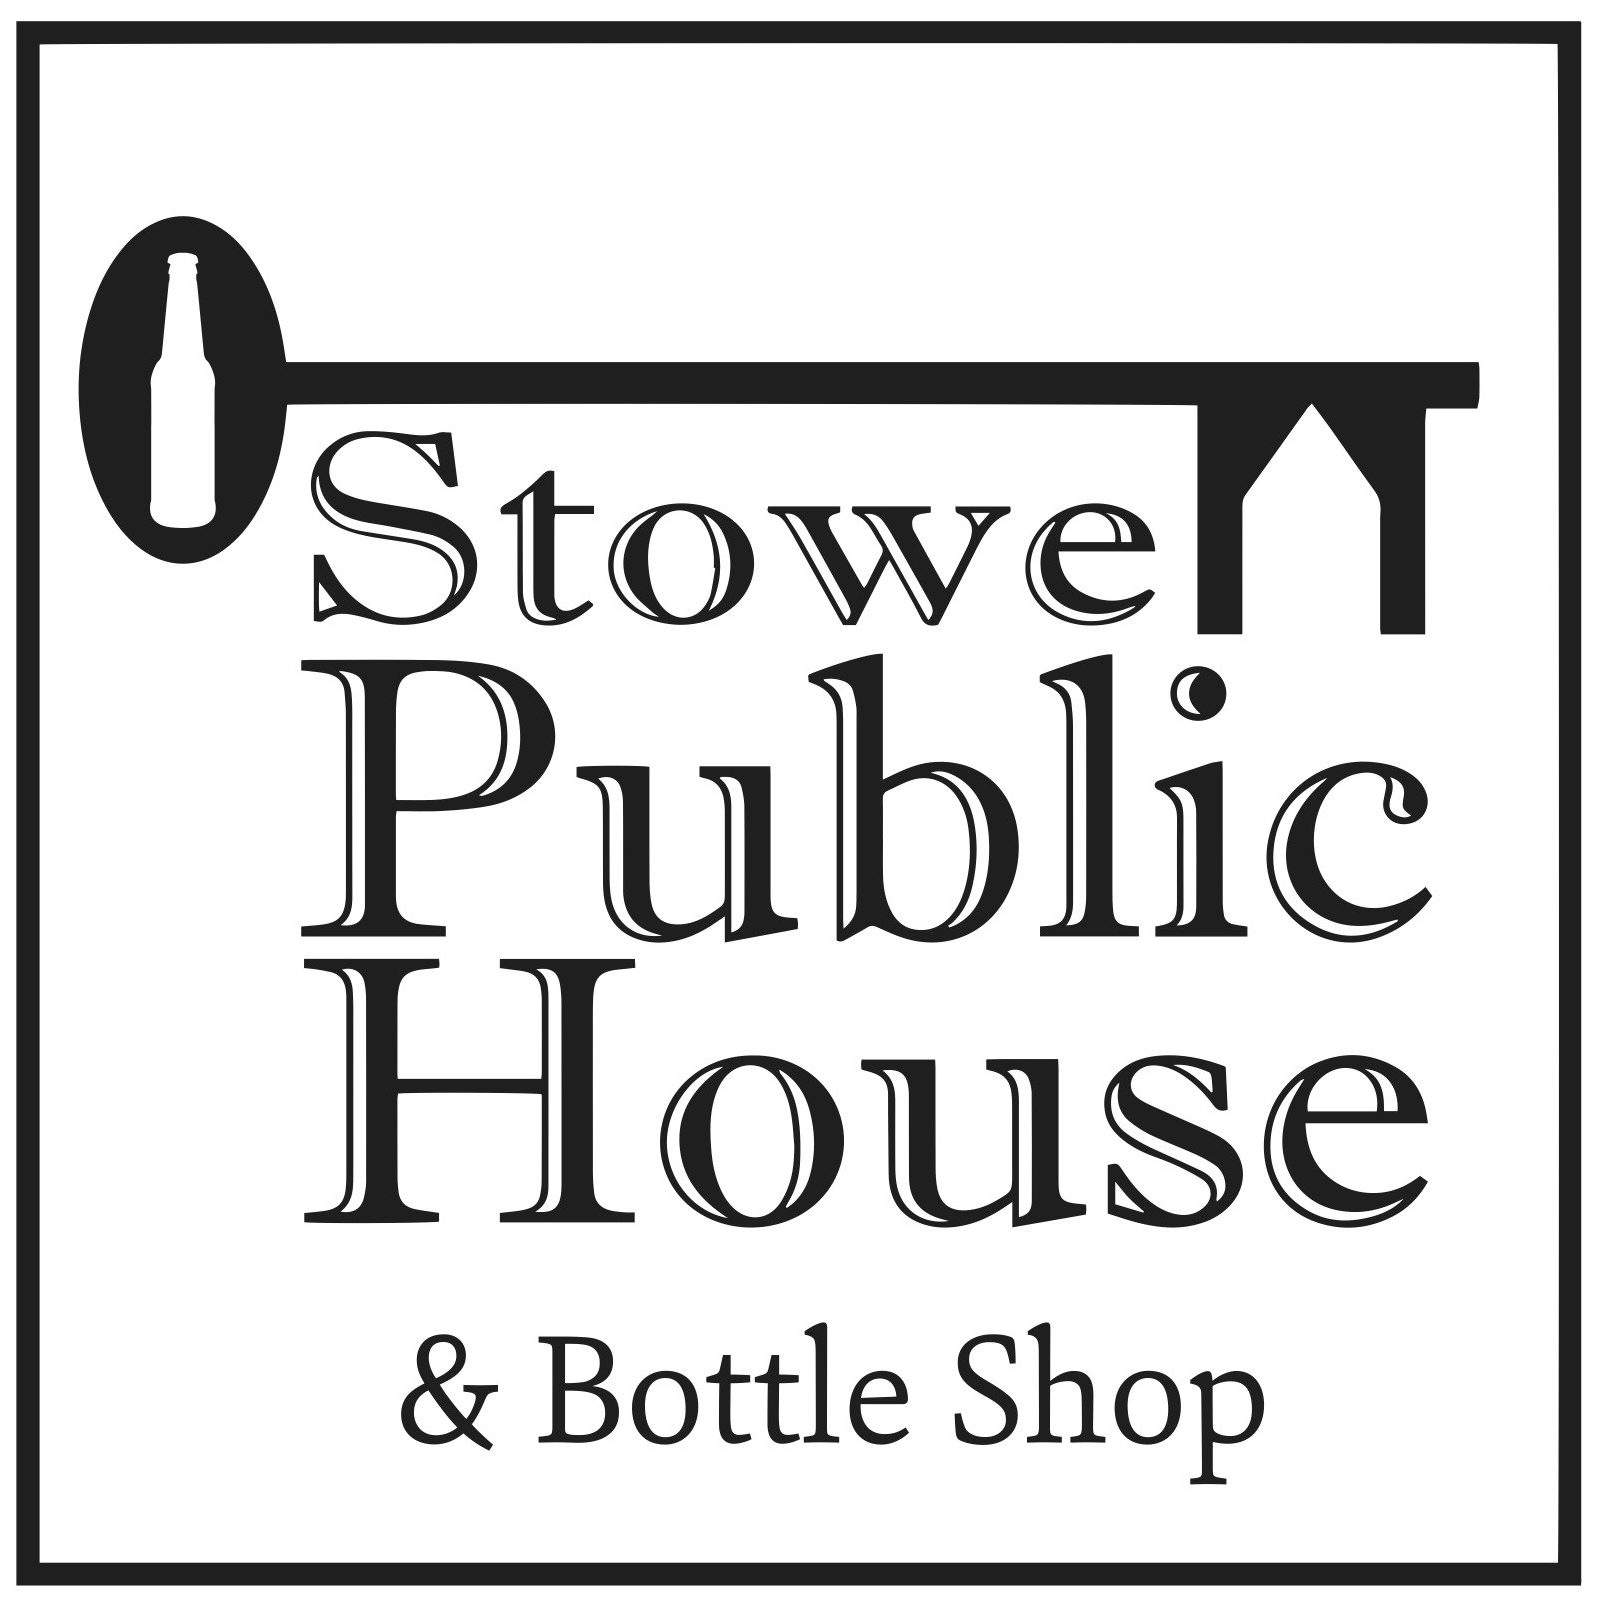 FREE beer tasting - We've got a busy weekend in Stowe, starting on the 17th! A few members of our MRB team will be hitting the road to pour tastings at the Public Stowe House! Located on 109 Main St, in Stowe, we will have a variety of our beer available to try! Our knowledgeable team will be there to answer any questions or just talk beer with you! So if you're in the area make sure to stop by and give us a try. We don't mind if you've tried before, or if you come back for seconds.